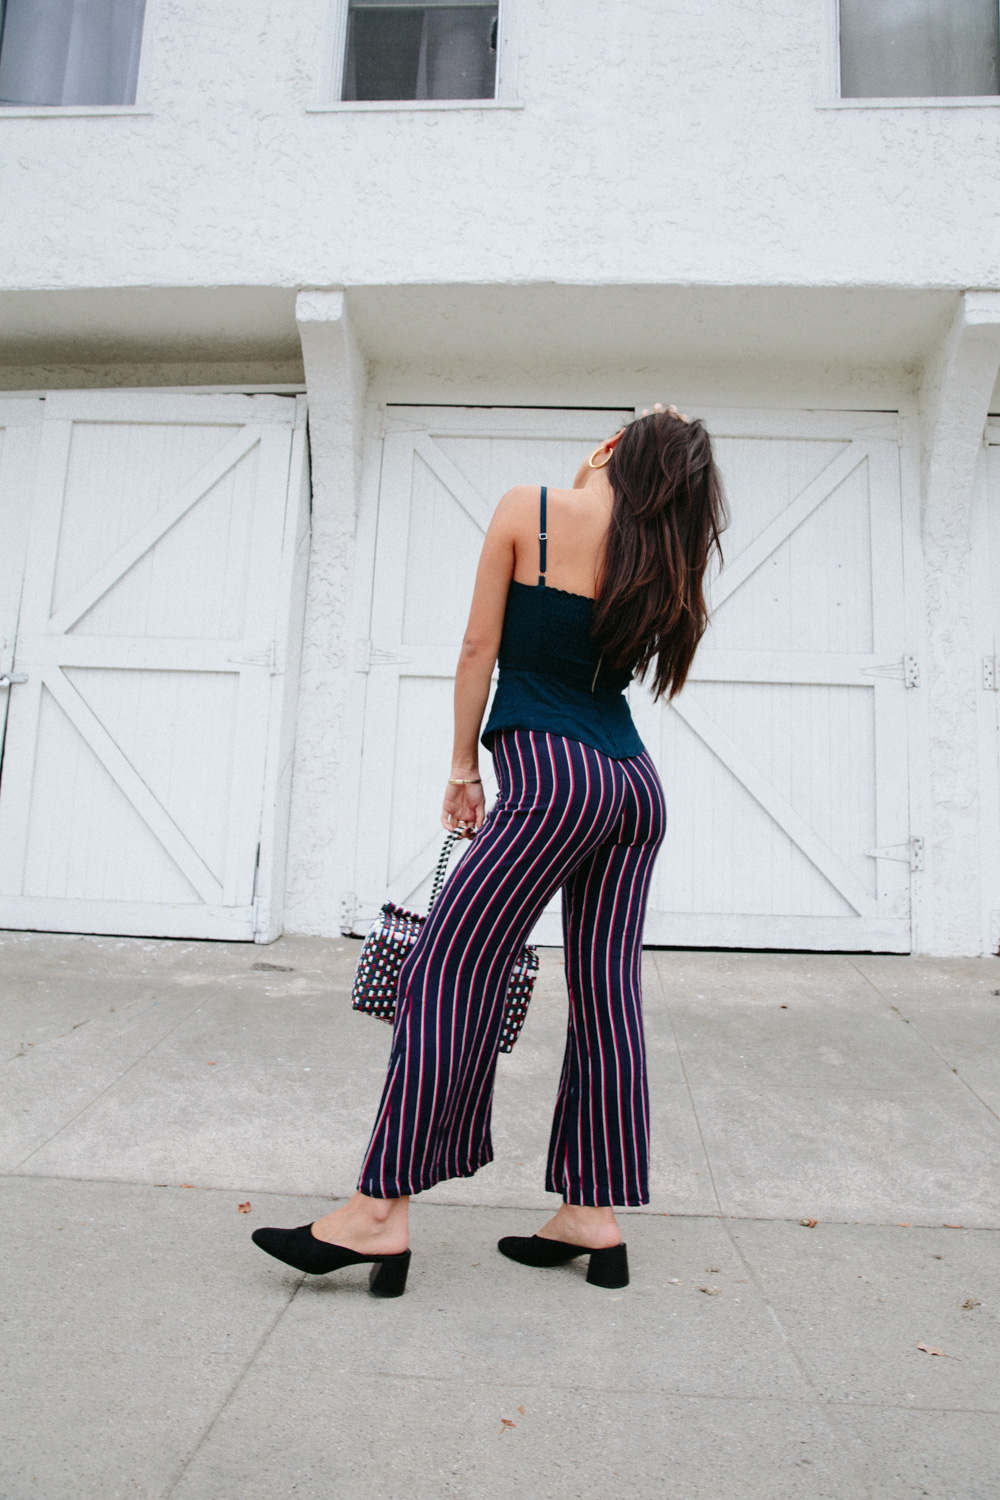 LOVE OR MONEY by Emily Tong wearing striped wide leg pants reformation top mango mules and zara leather jacket